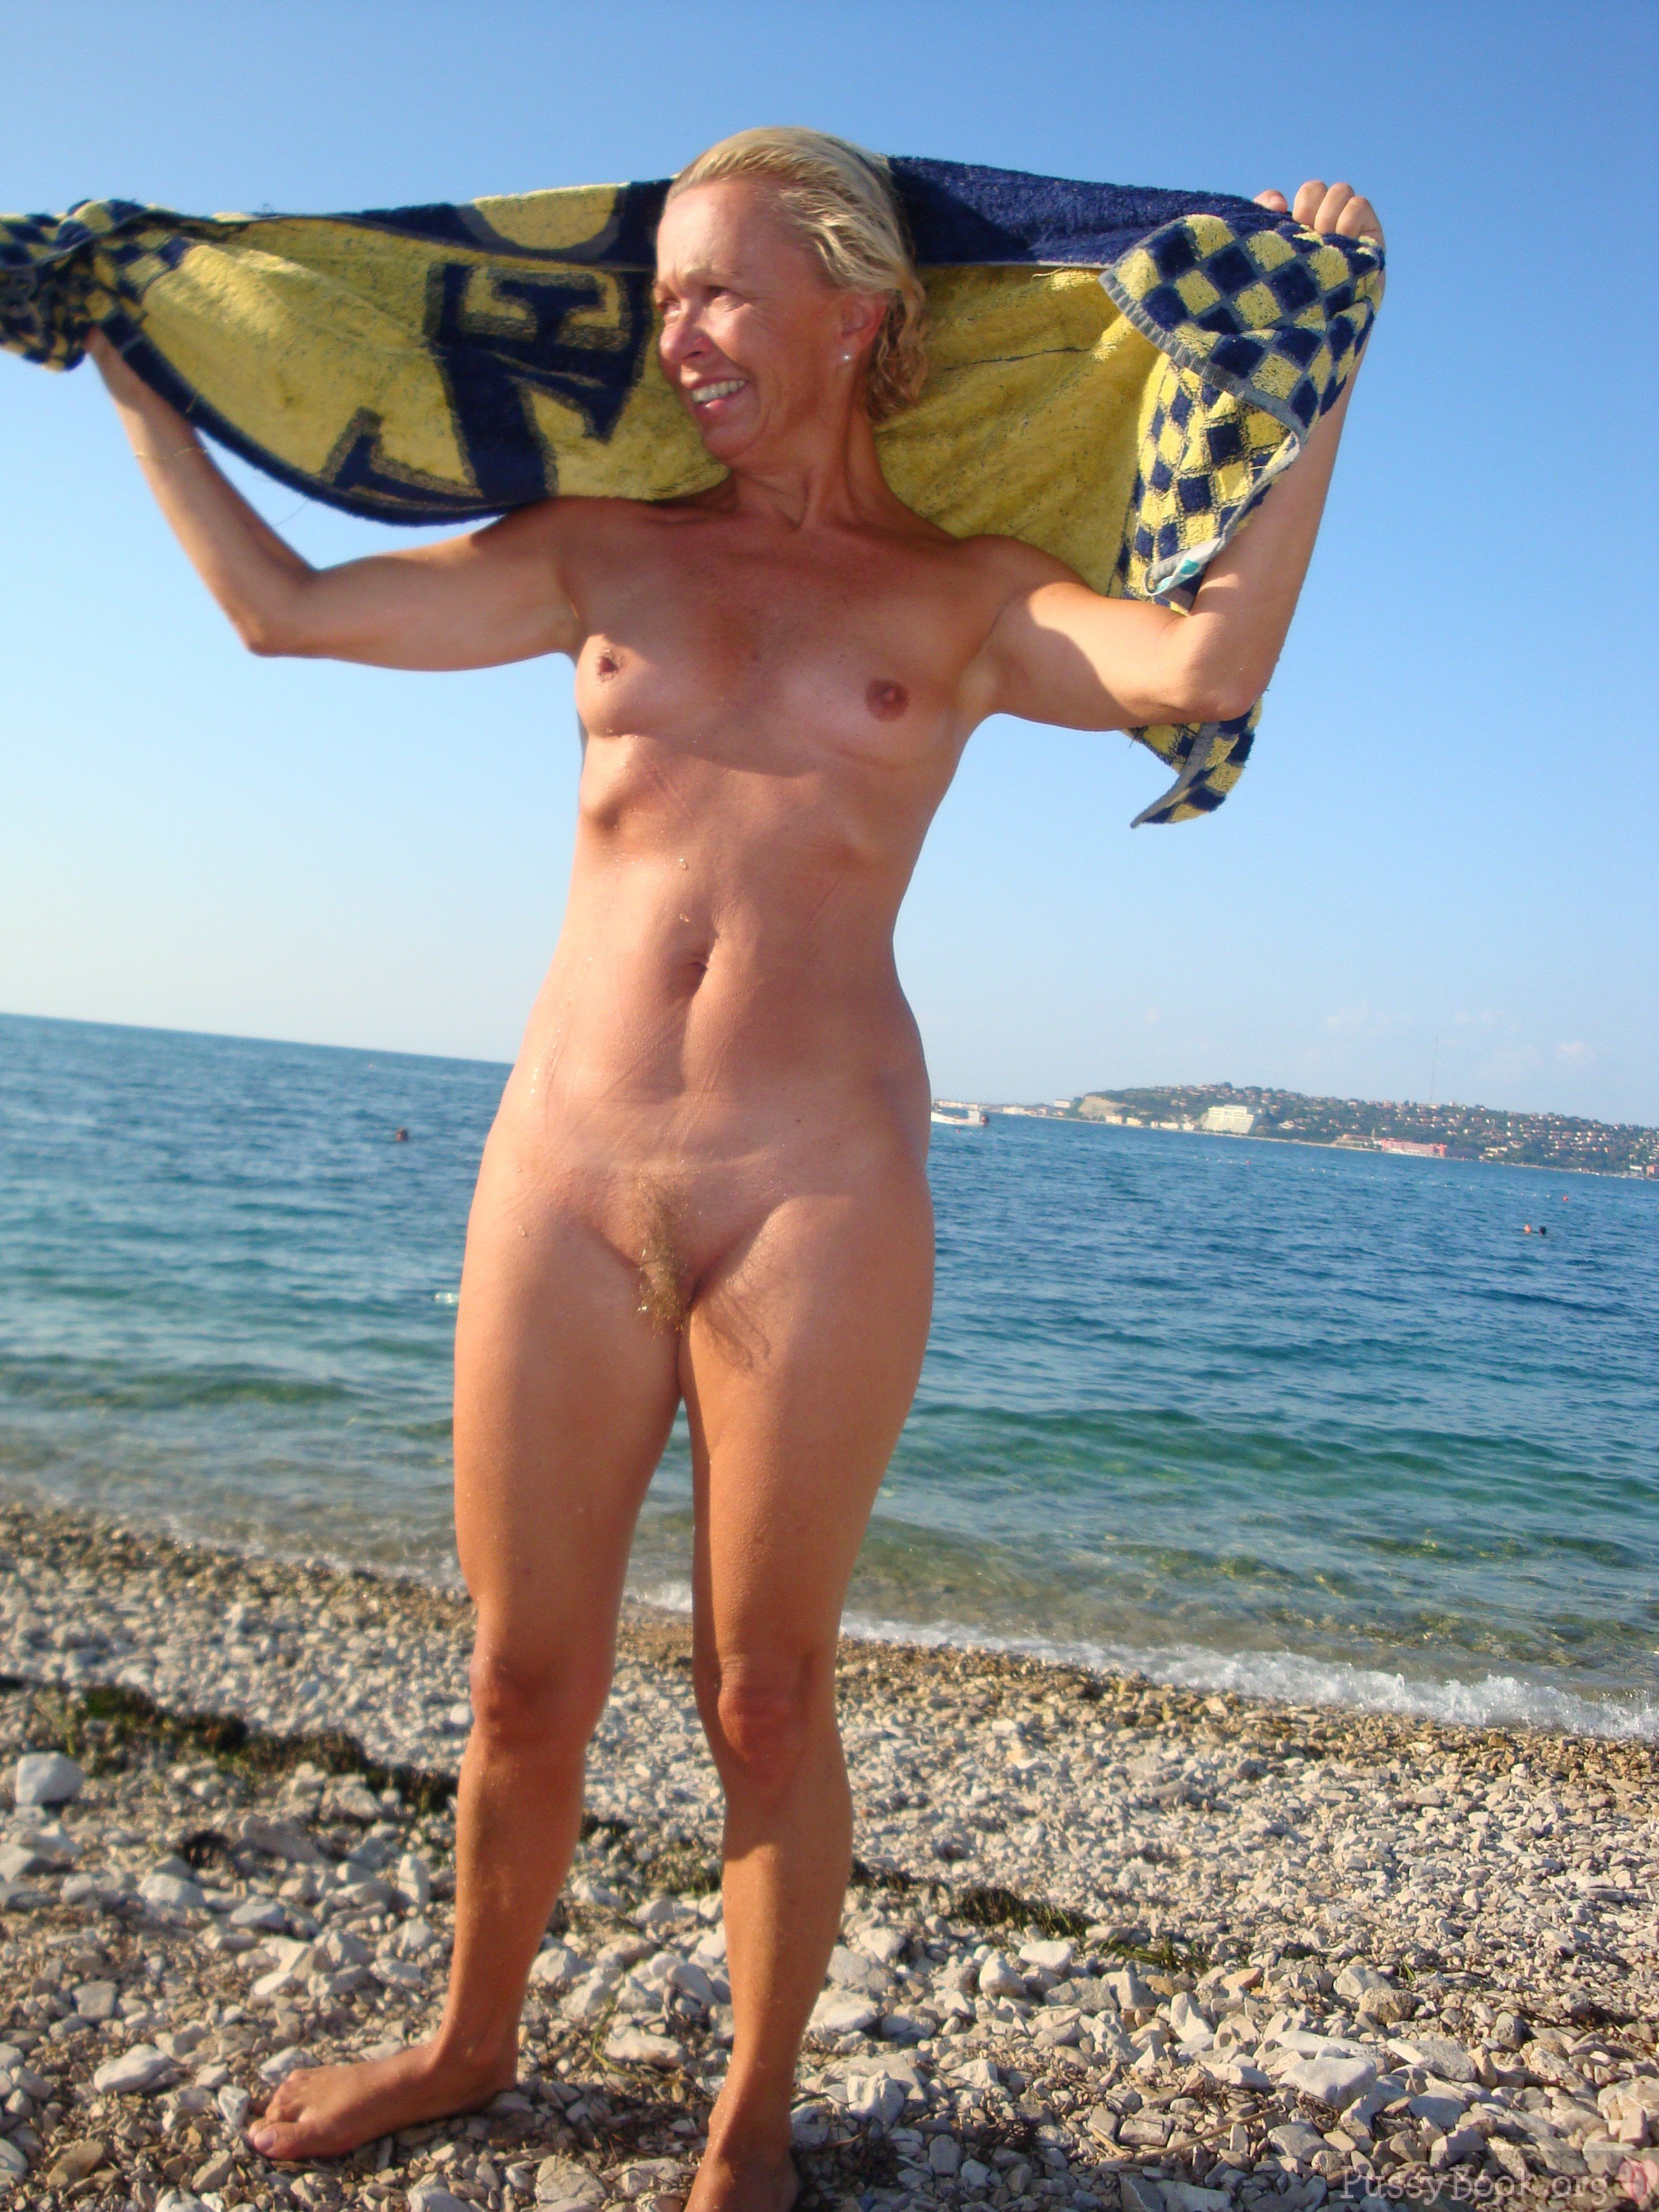 Older Blonde Woman Nudist On Beach  Pussy Pictures -5889